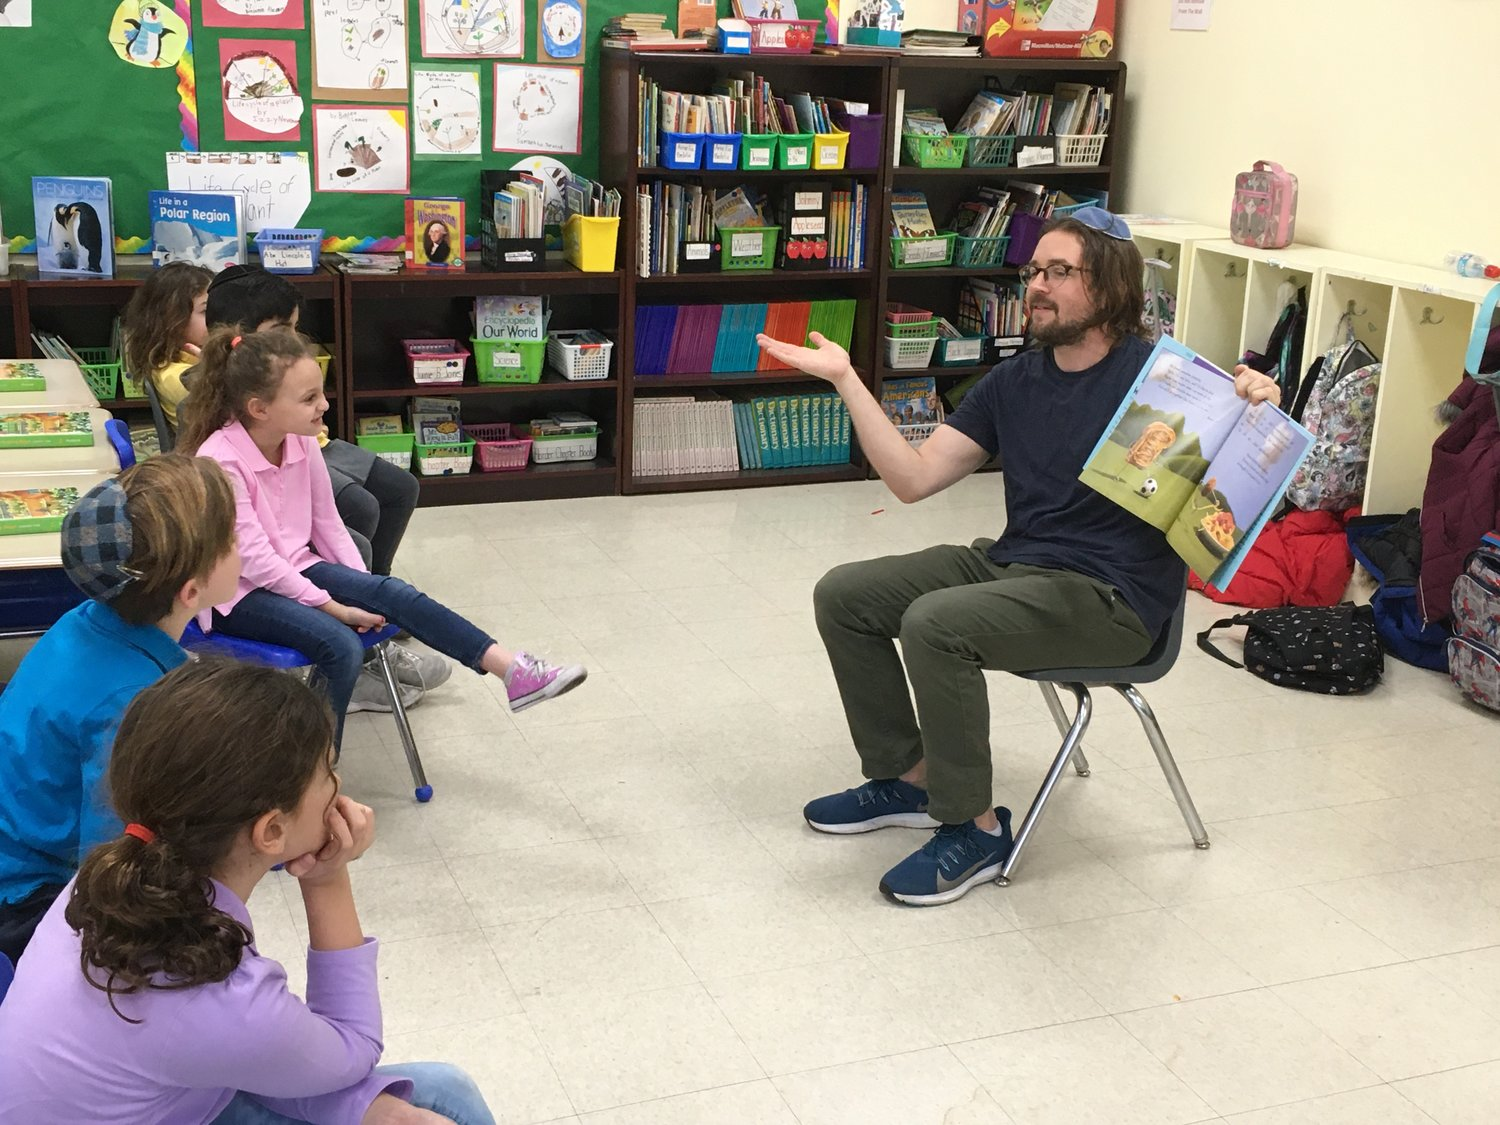 In an effort to bring World Read Aloud Day to school, Hindi's Libraries co-founders Leslie Gang and Dovid Kanarfogel visited seven classrooms at The Brandeis School on Feb. 5. Kanarfogel read 'Peanut Butter & Cupcake' by Terry Border to Helen Liebman's second-grade class.